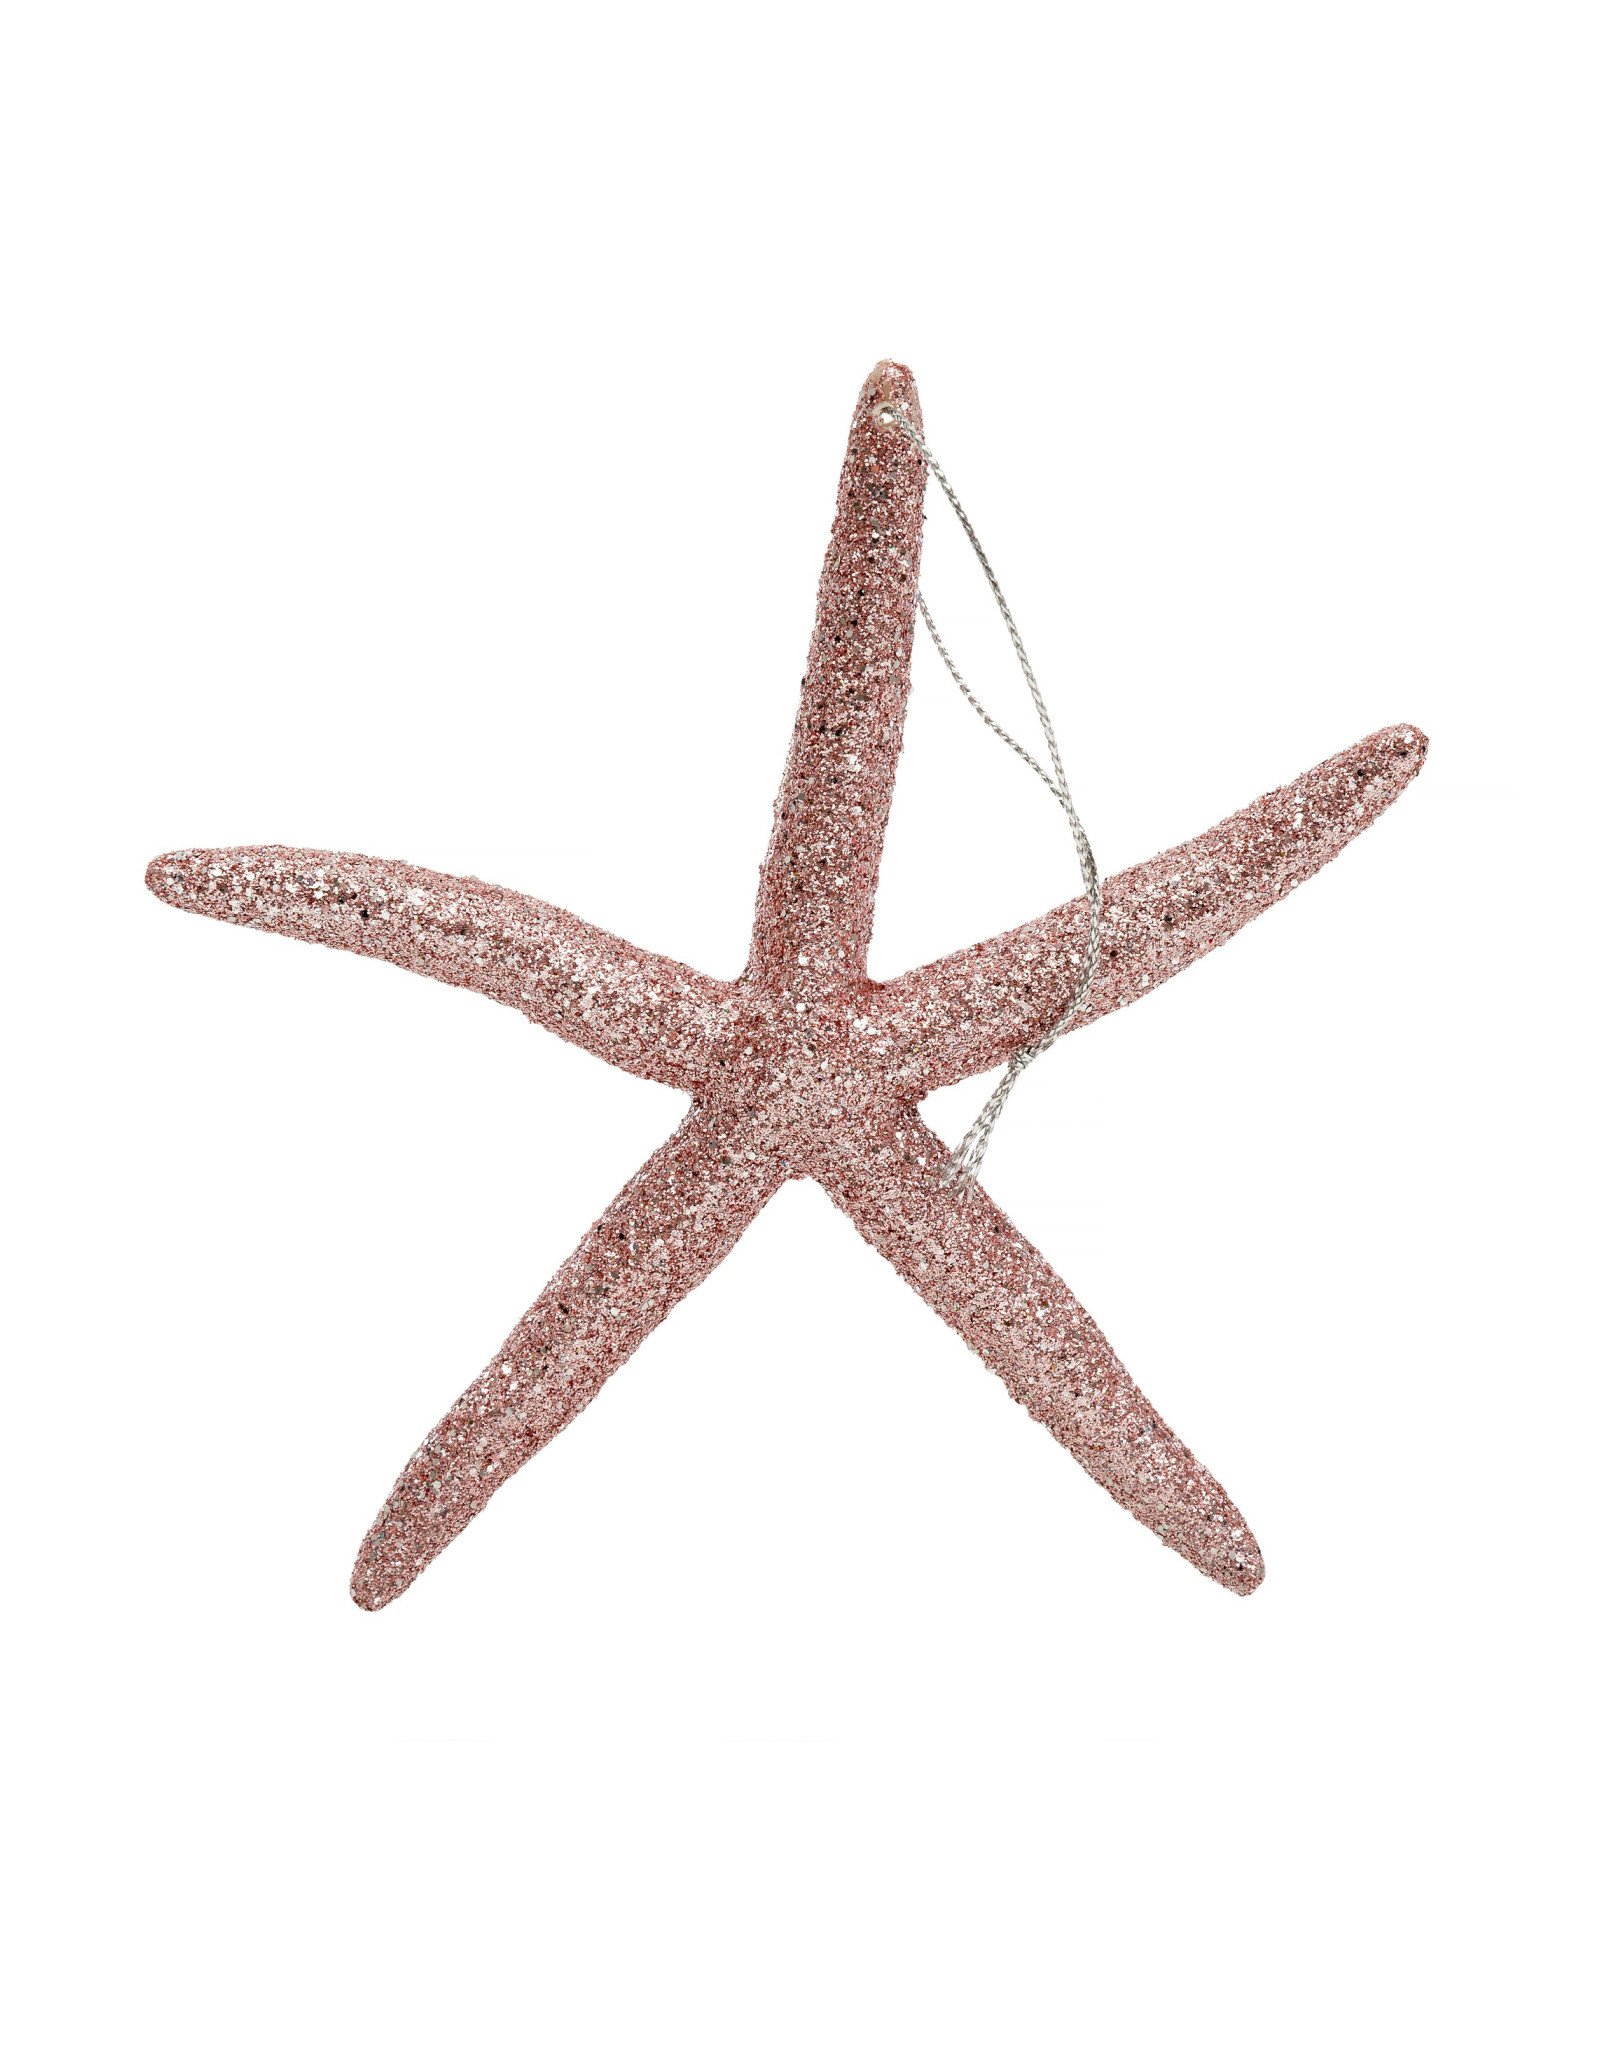 Indaba Sparkly Sea Star Ornament - Pink